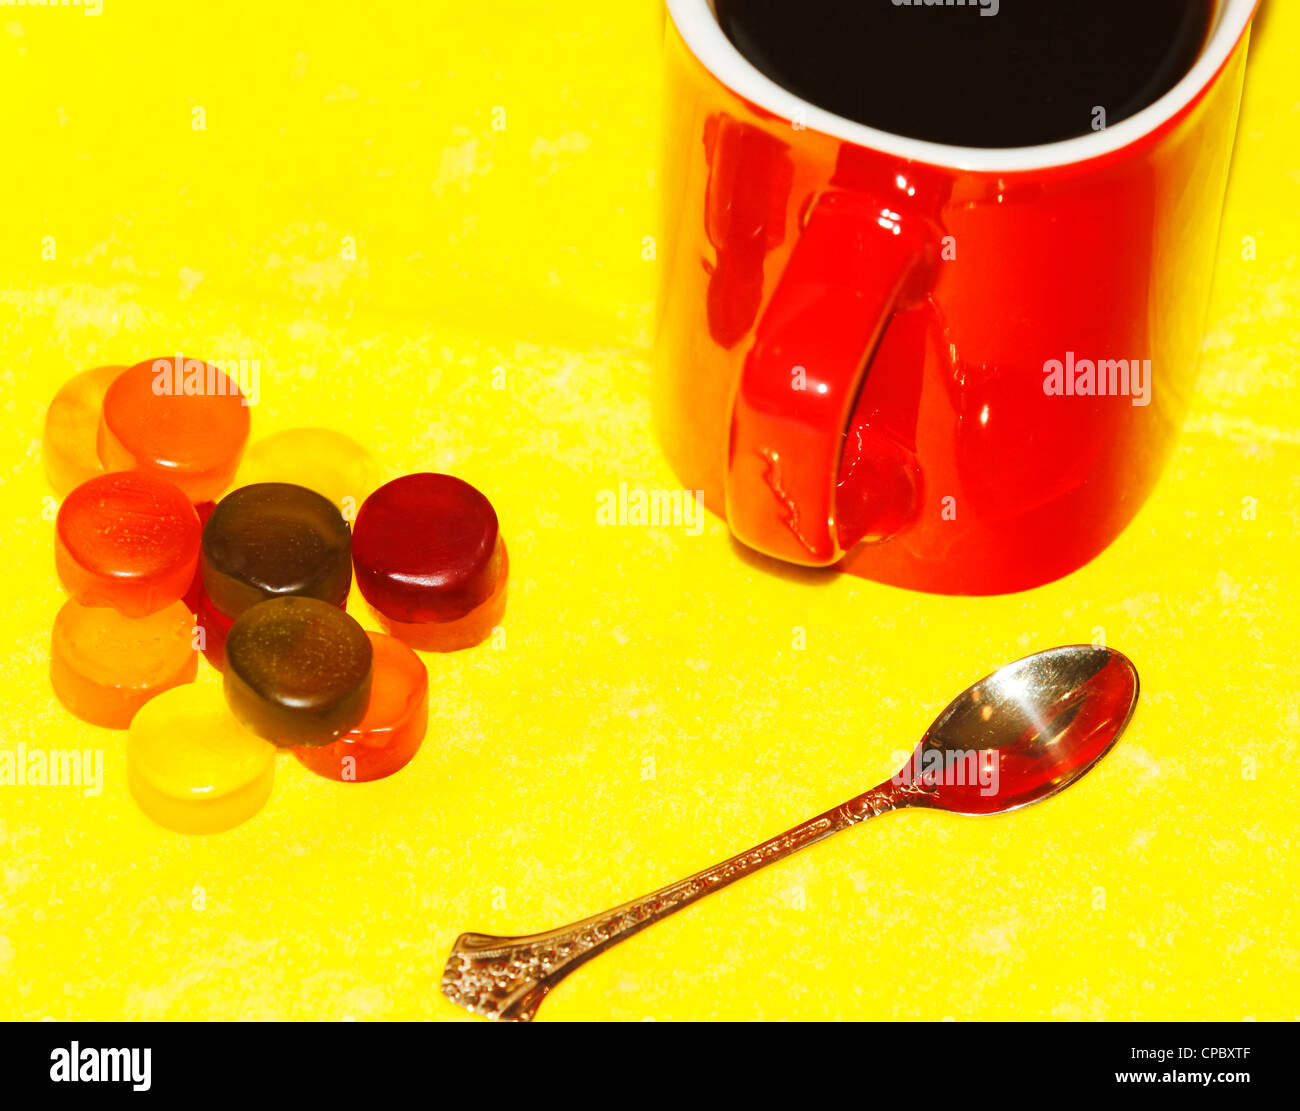 cup of coffee in the red, tasty, pretty sweet, golden spoon on a yellow background - Stock Image